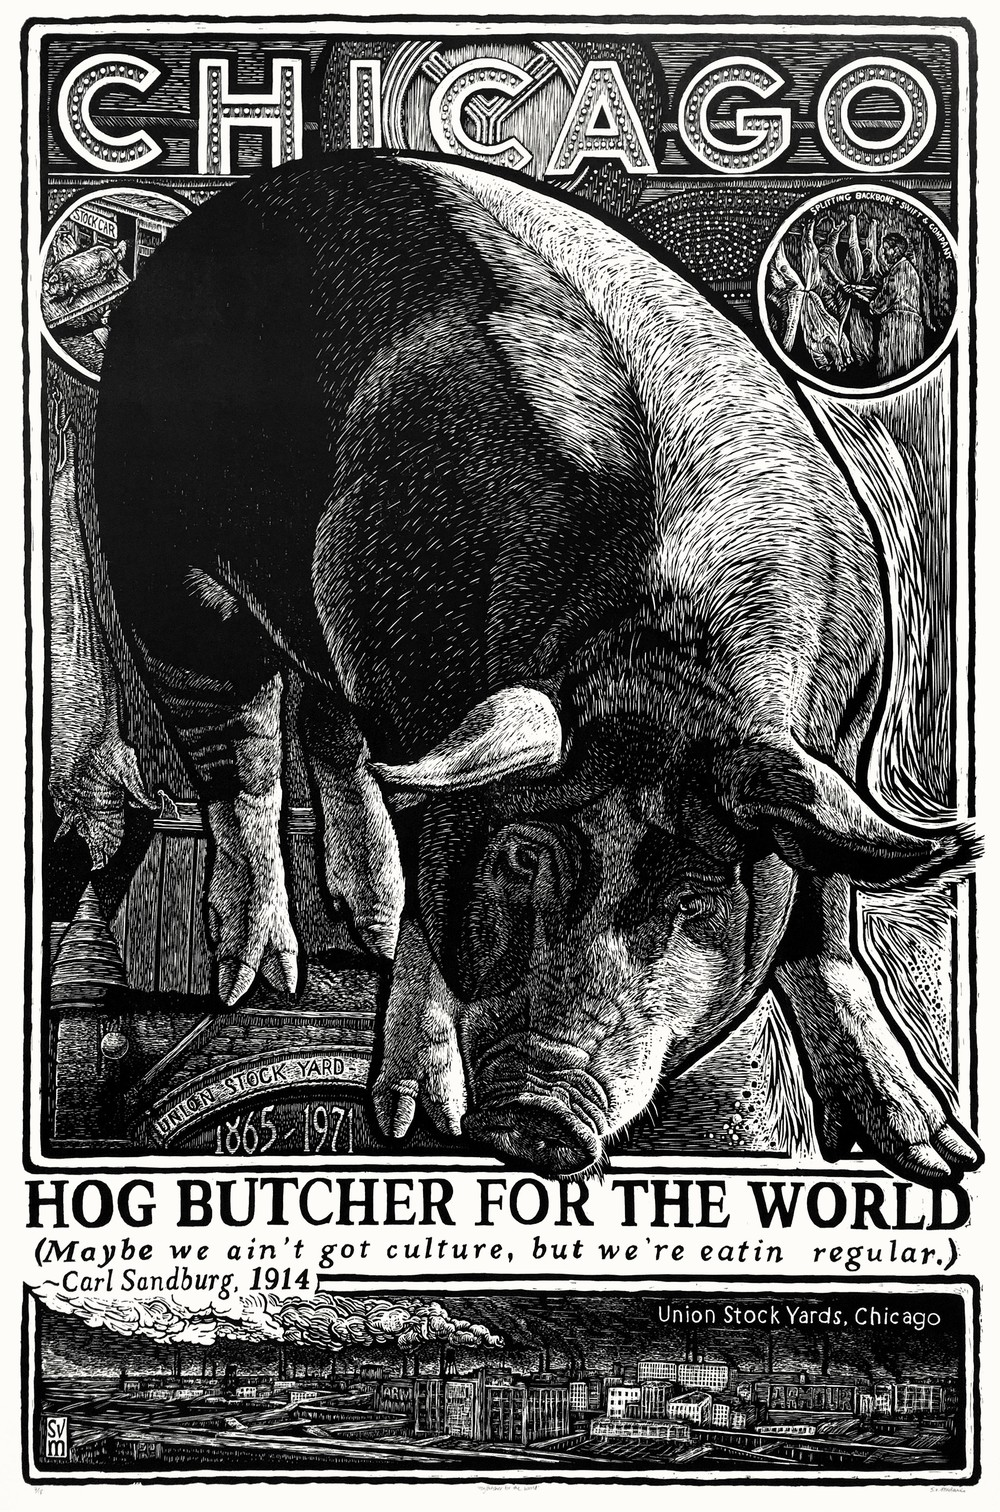 Hog Butcher for the World $2,000 woodblock print 64 x 44